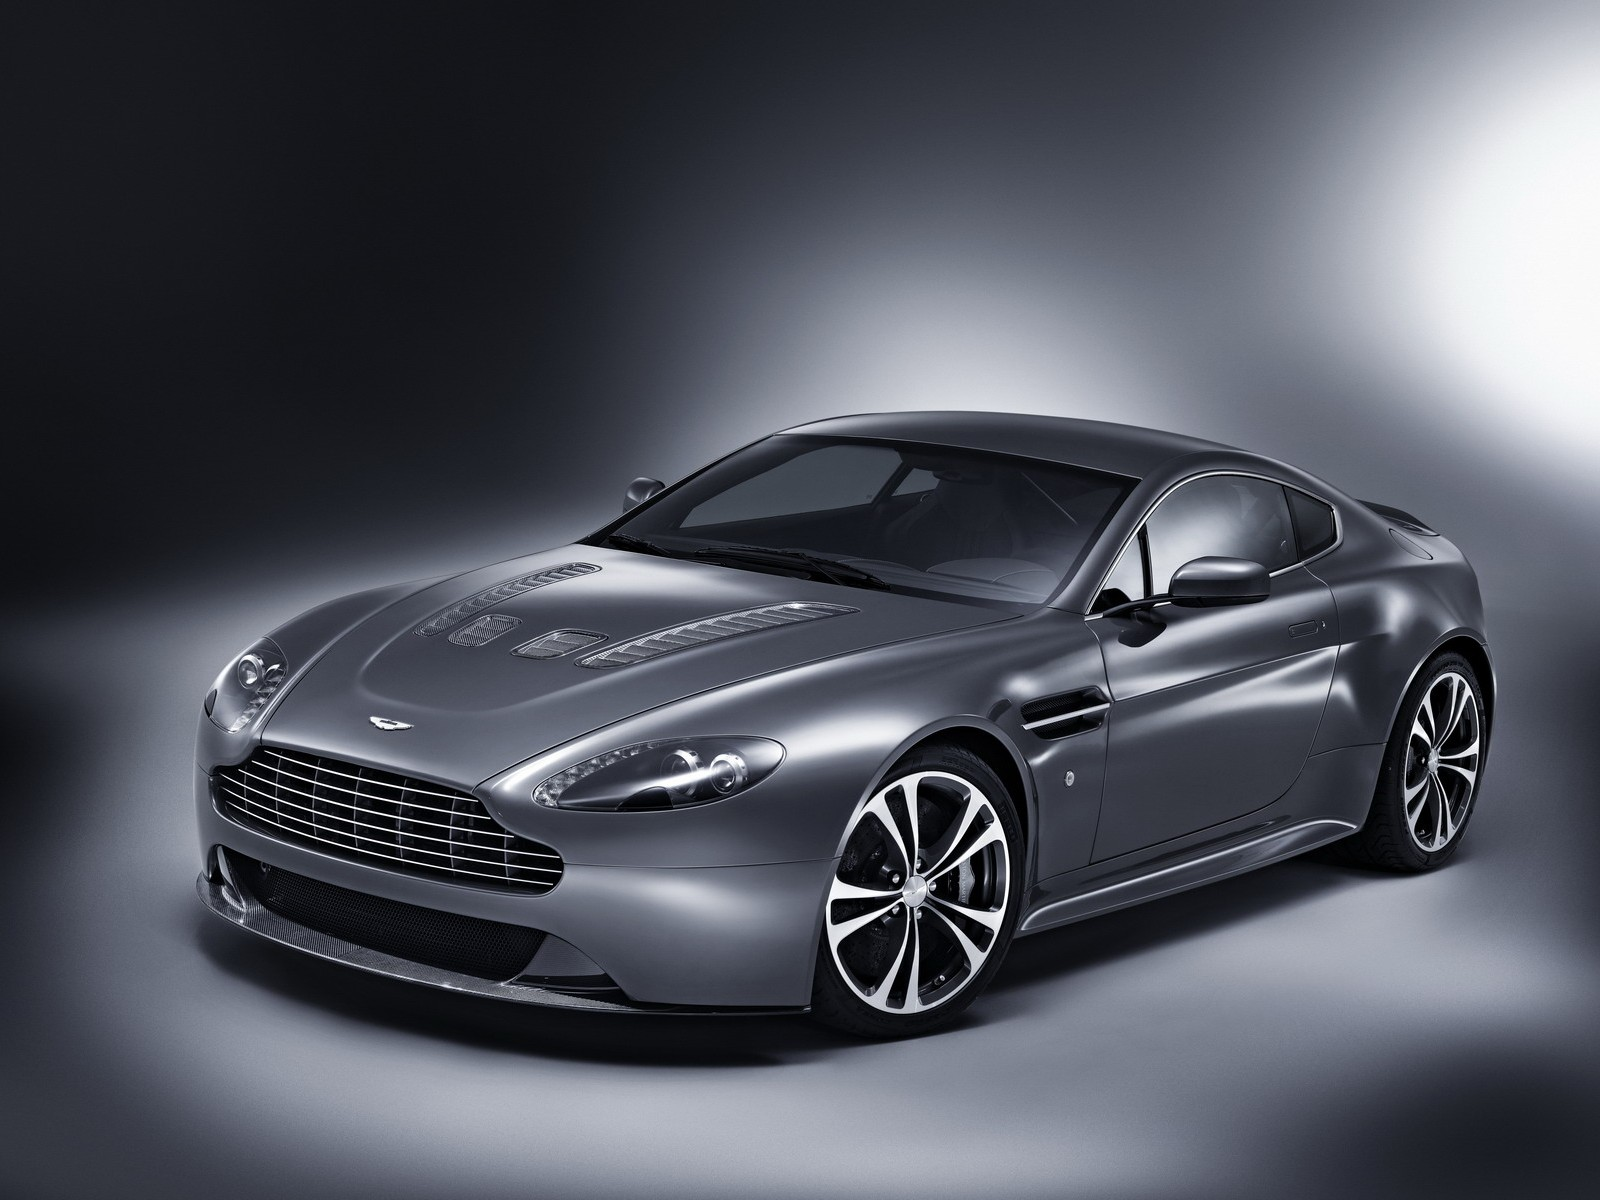 Aston Martin V12 Wallpaper